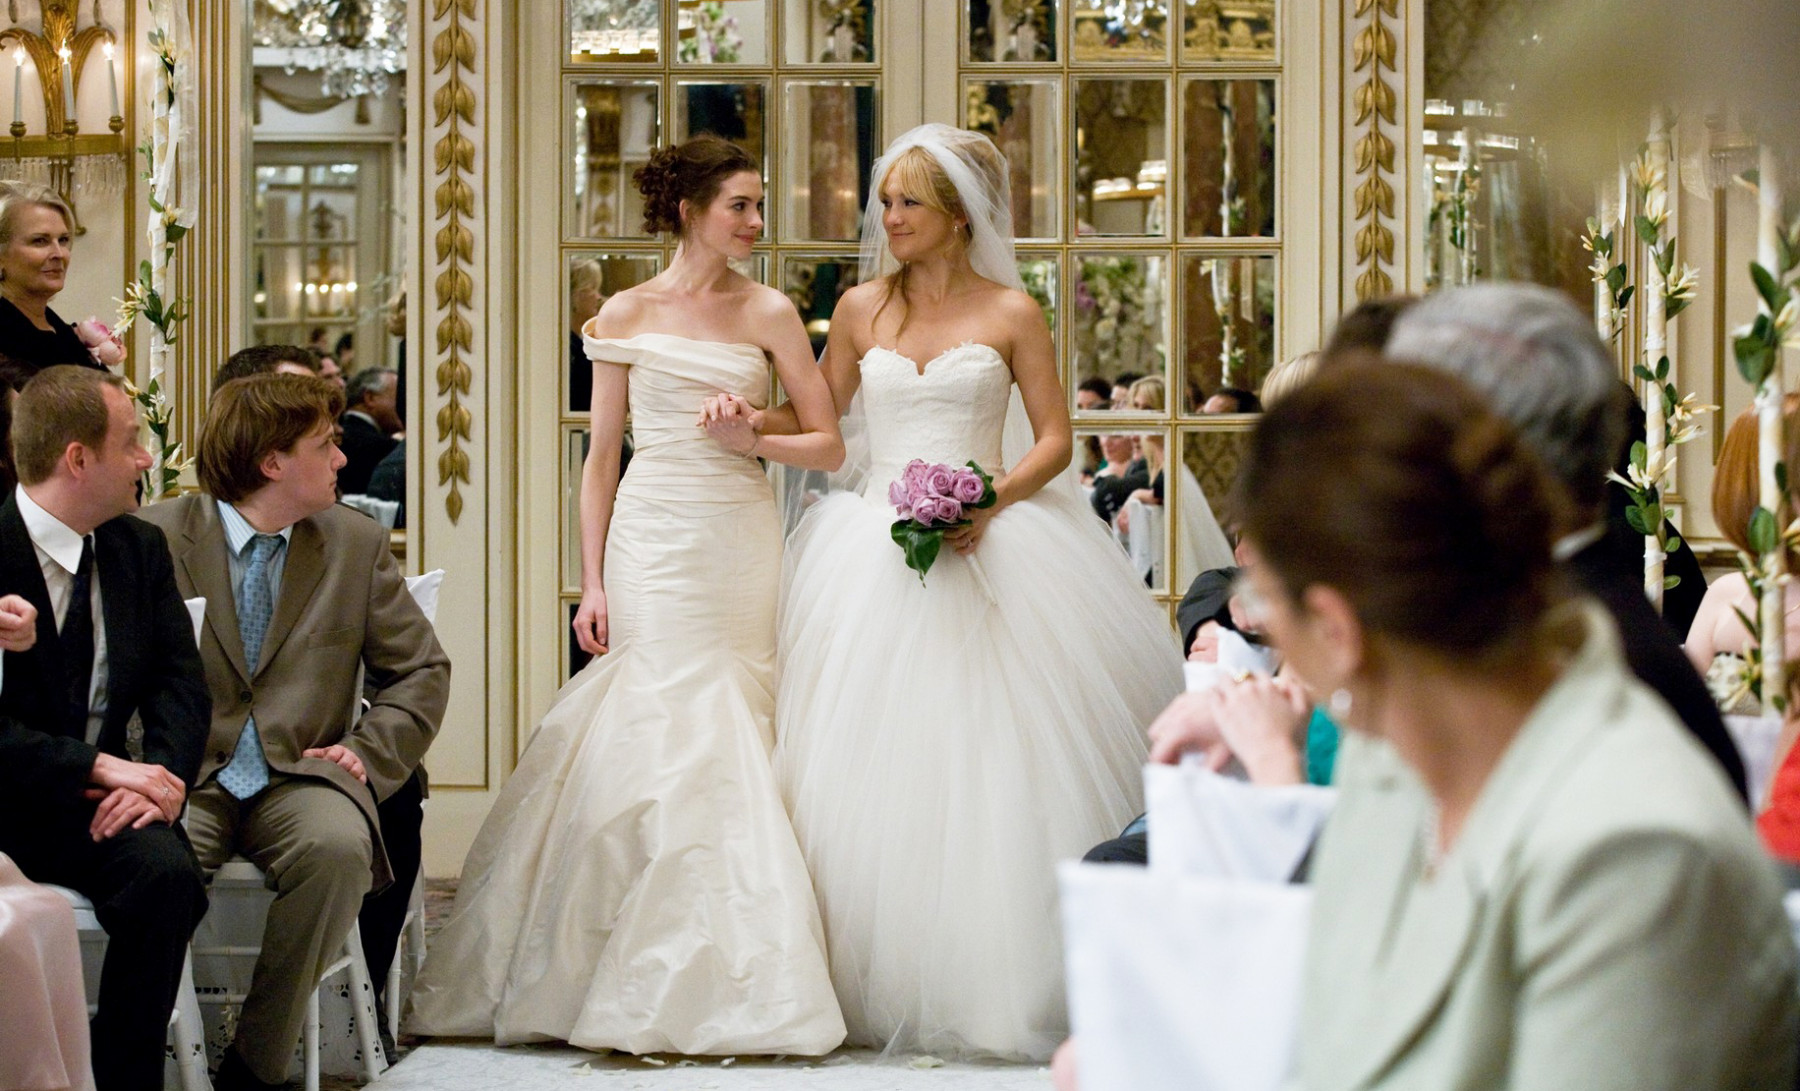 The best wedding movies every bride should